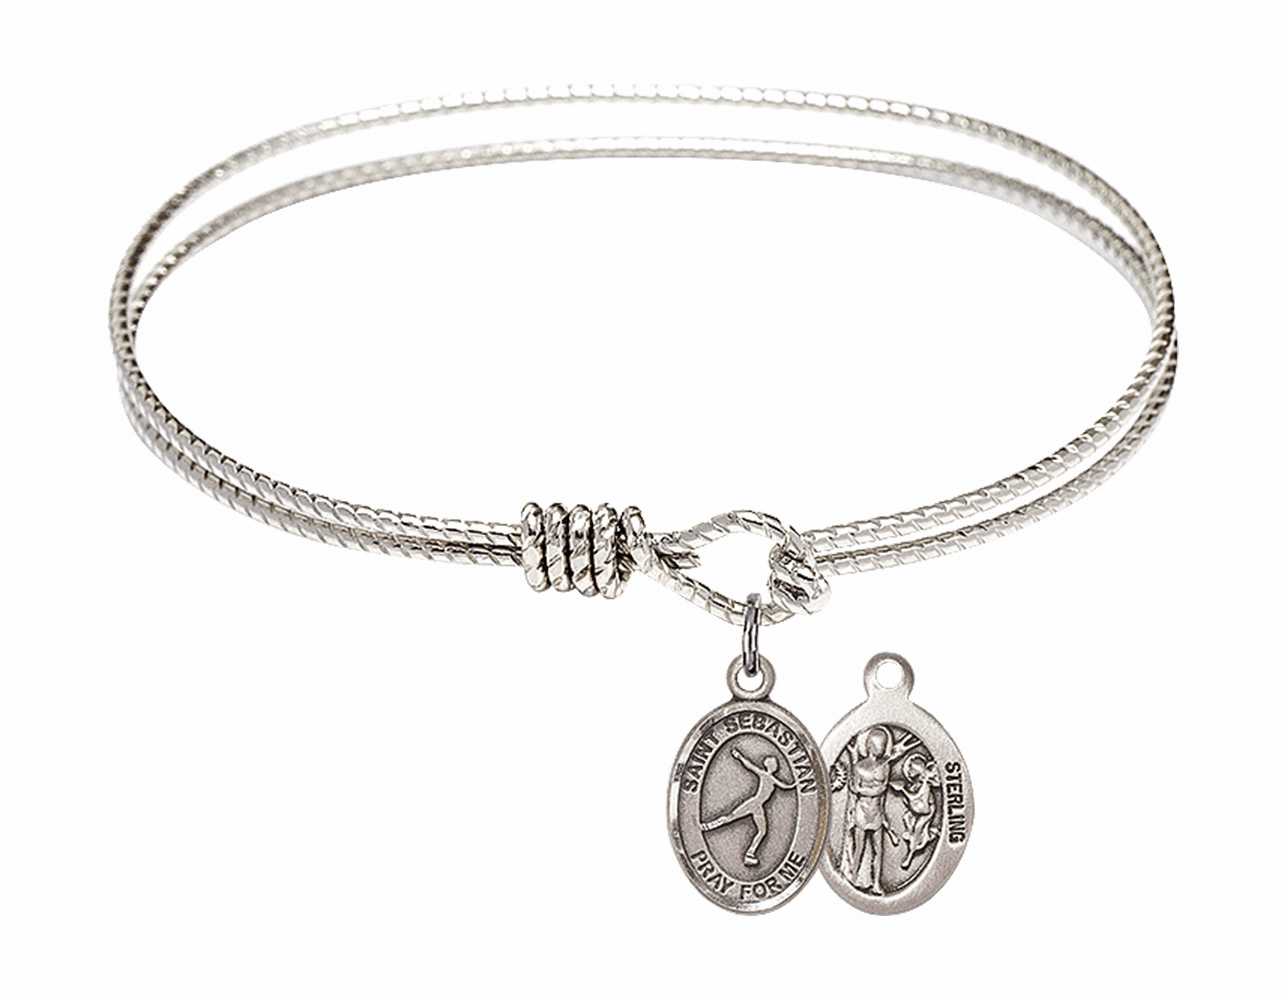 Twist Round Eye Hook St Sebastian Figure Skating Bangle Charm Bracelet by Bliss